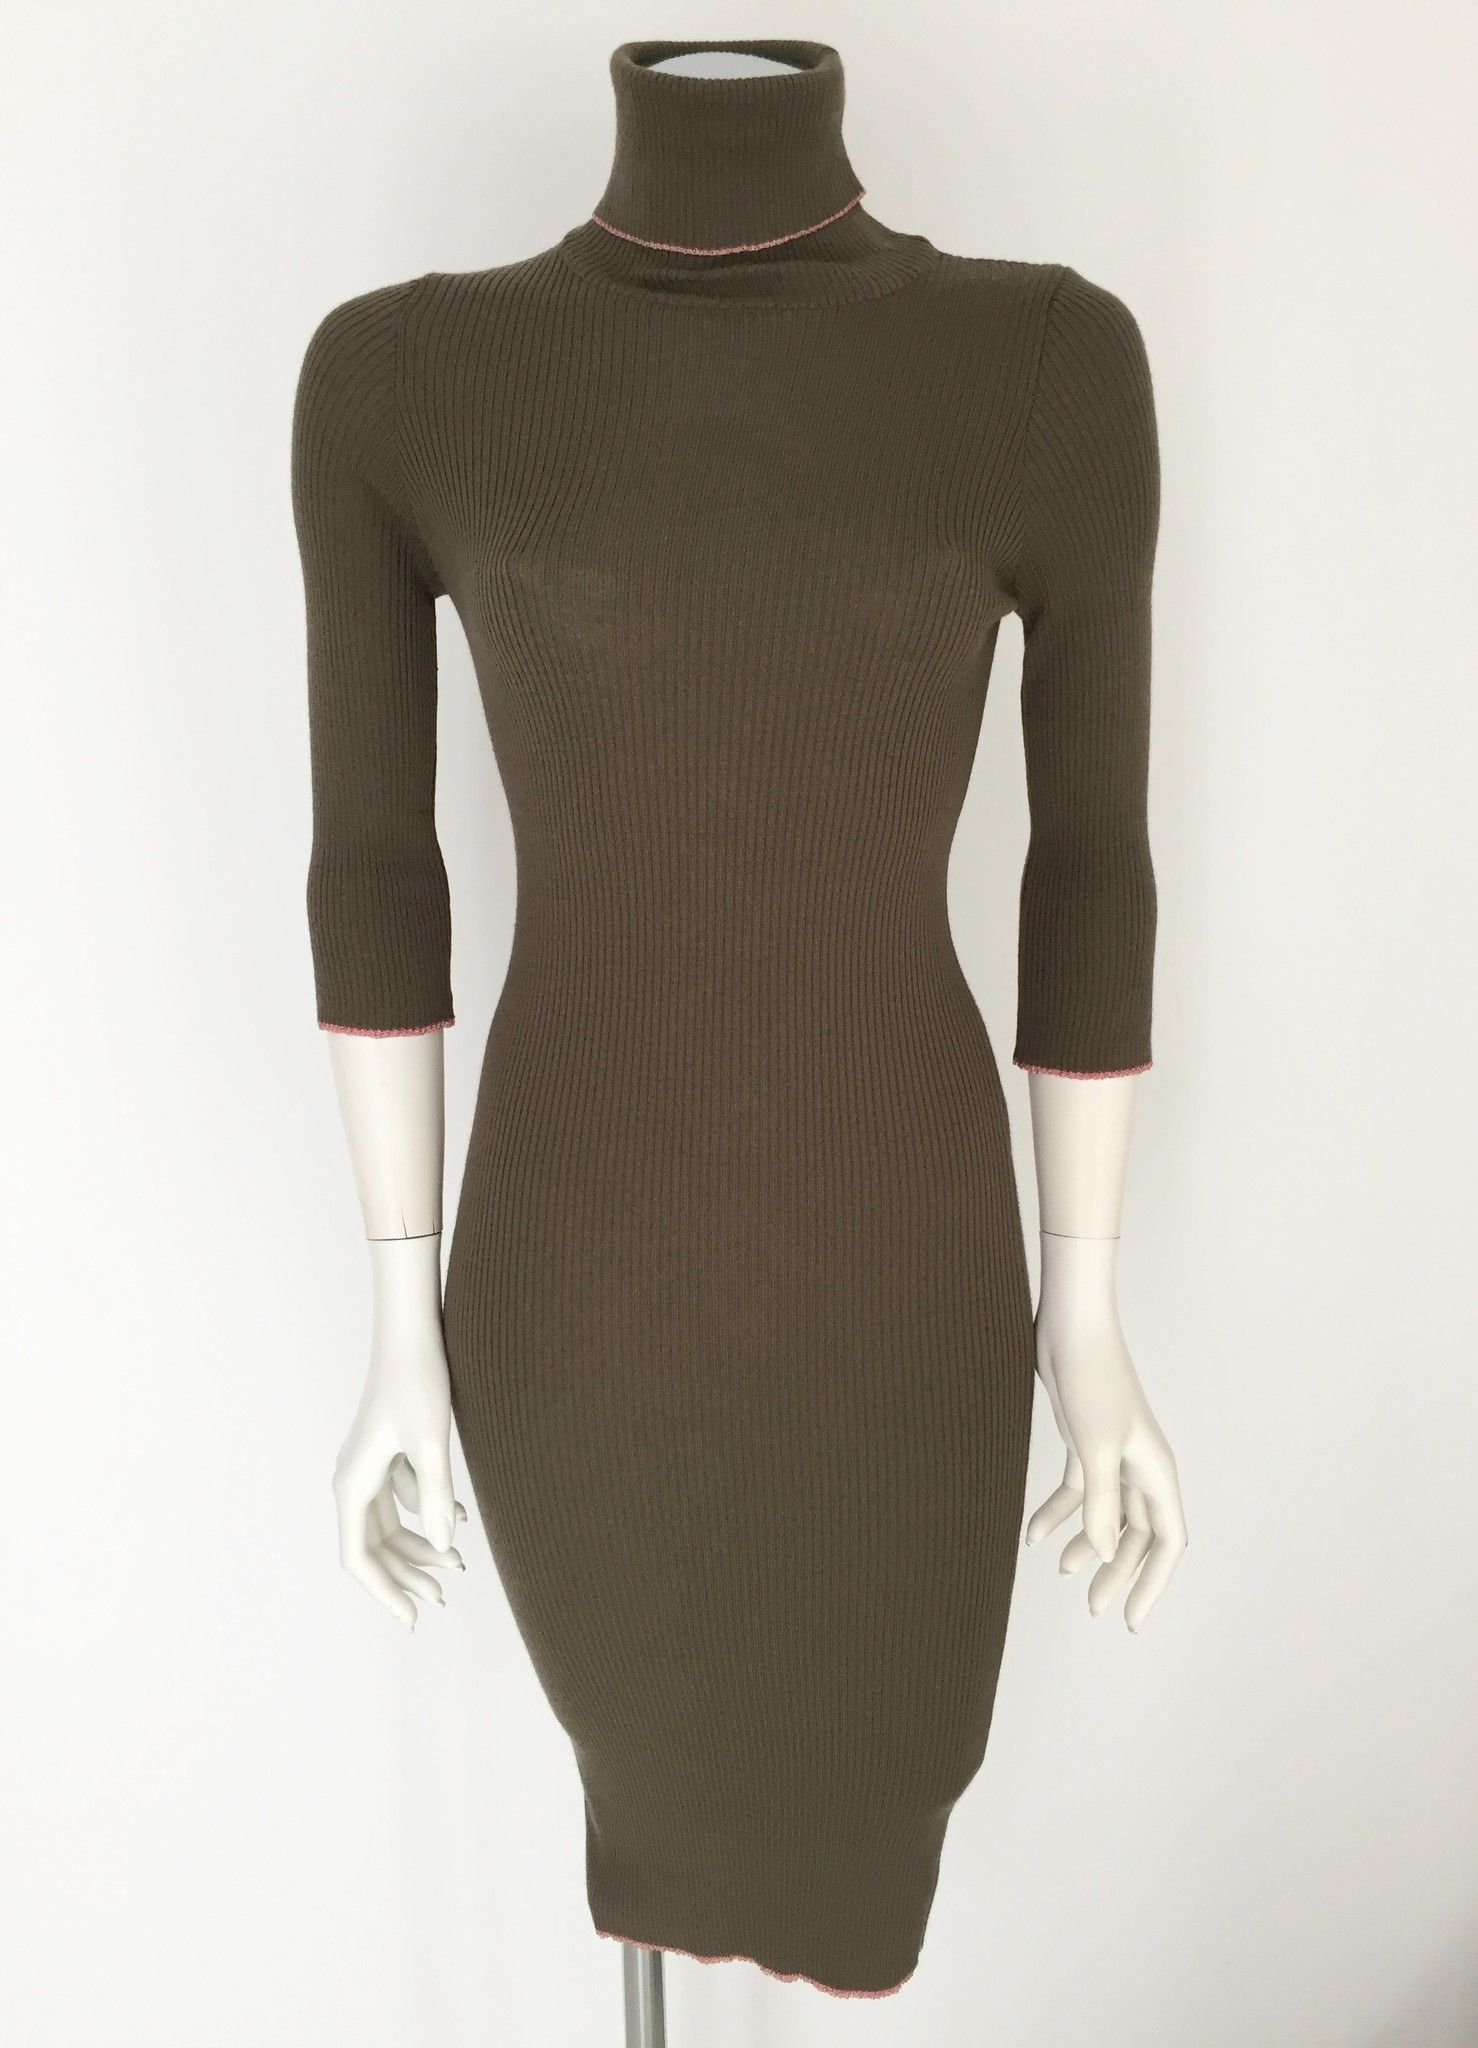 Adele Fado Turtleneck Dress Cod.C905